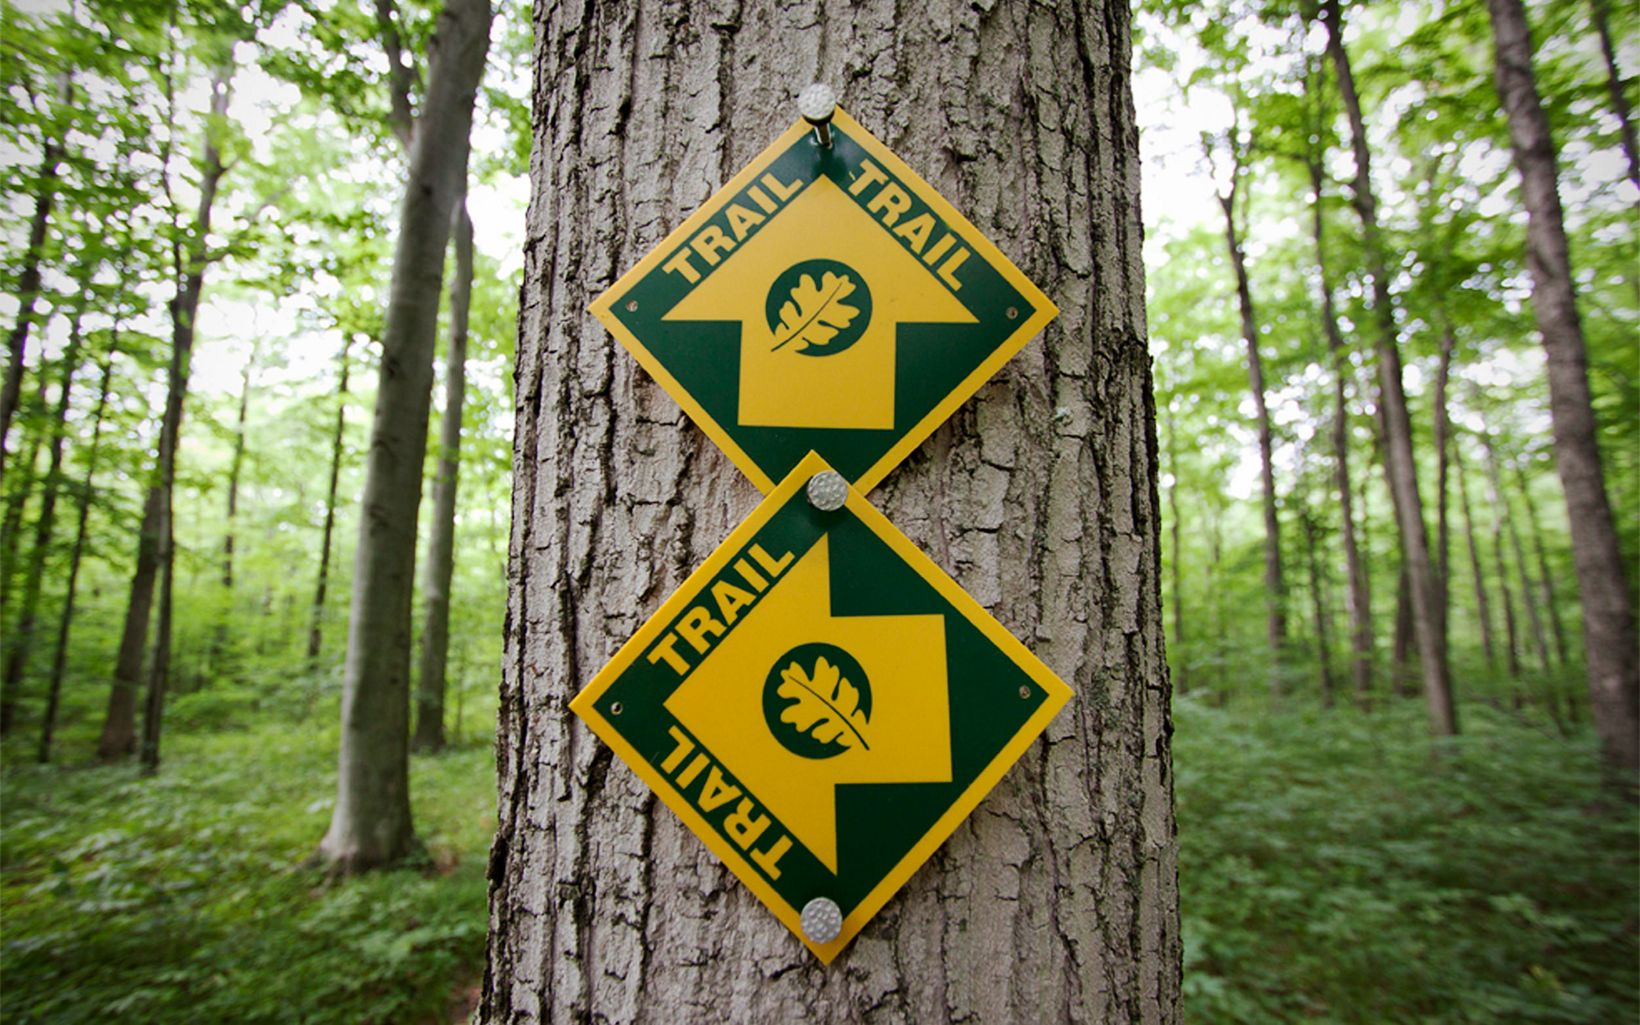 Two trail signs nailed to a tree.